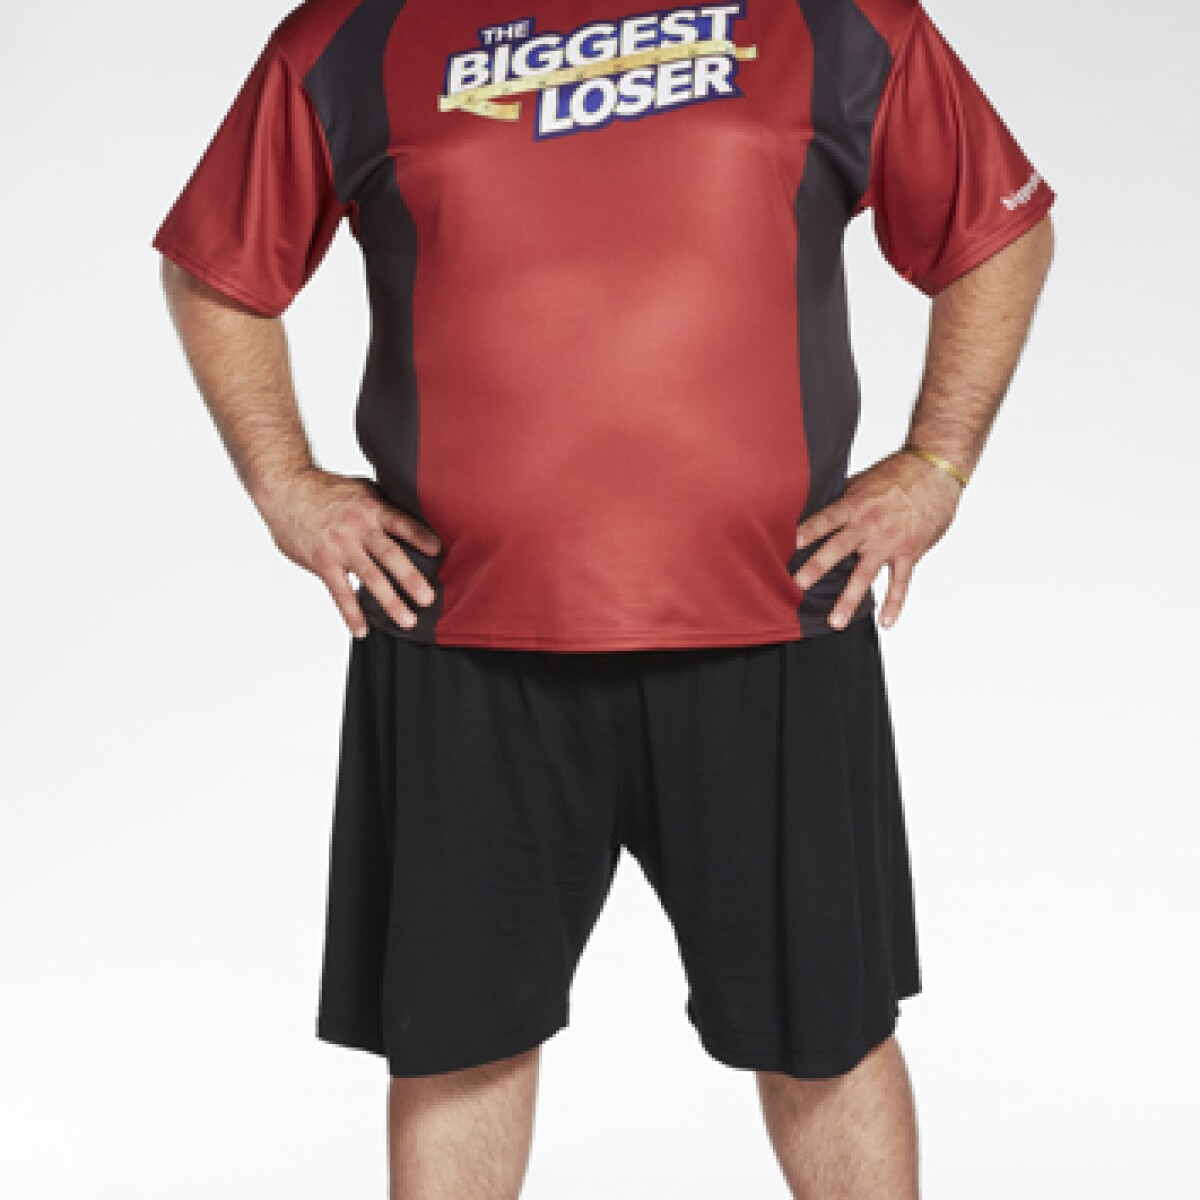 299d645027 'Biggest Loser's Joe Faces Weight Loss Fears